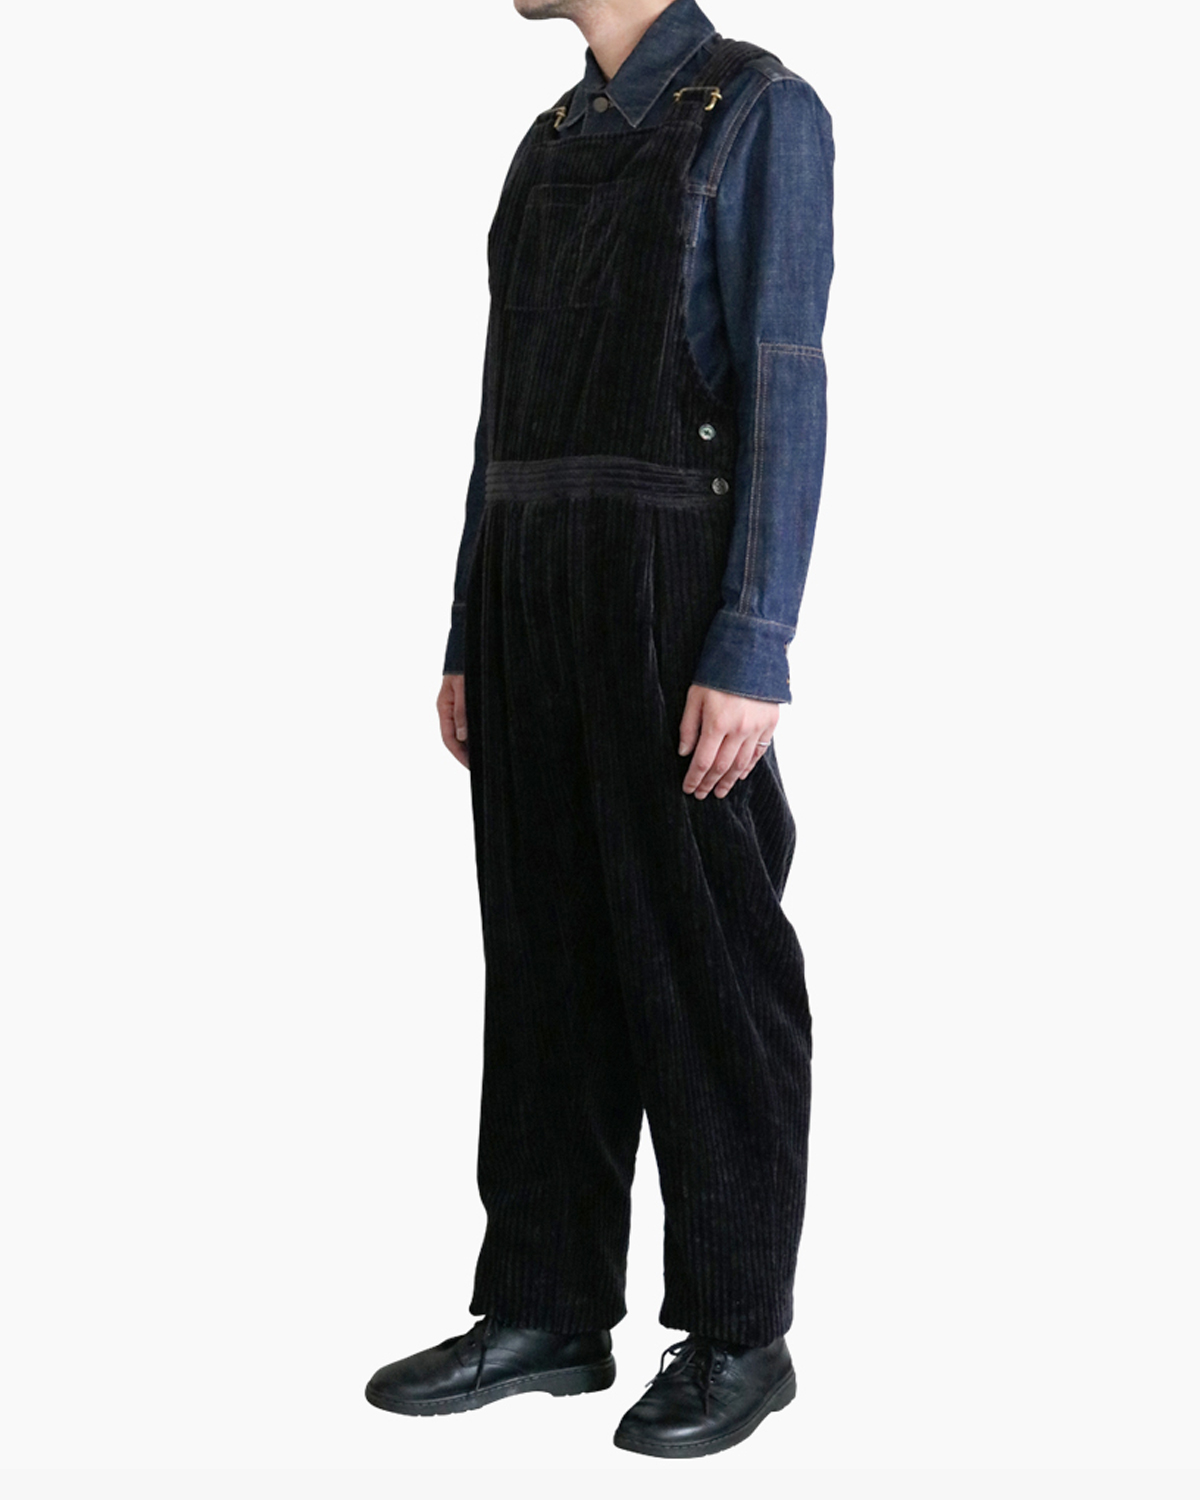 3W Corduroy|OVERALL – BLACK|Exclusive|NEAT